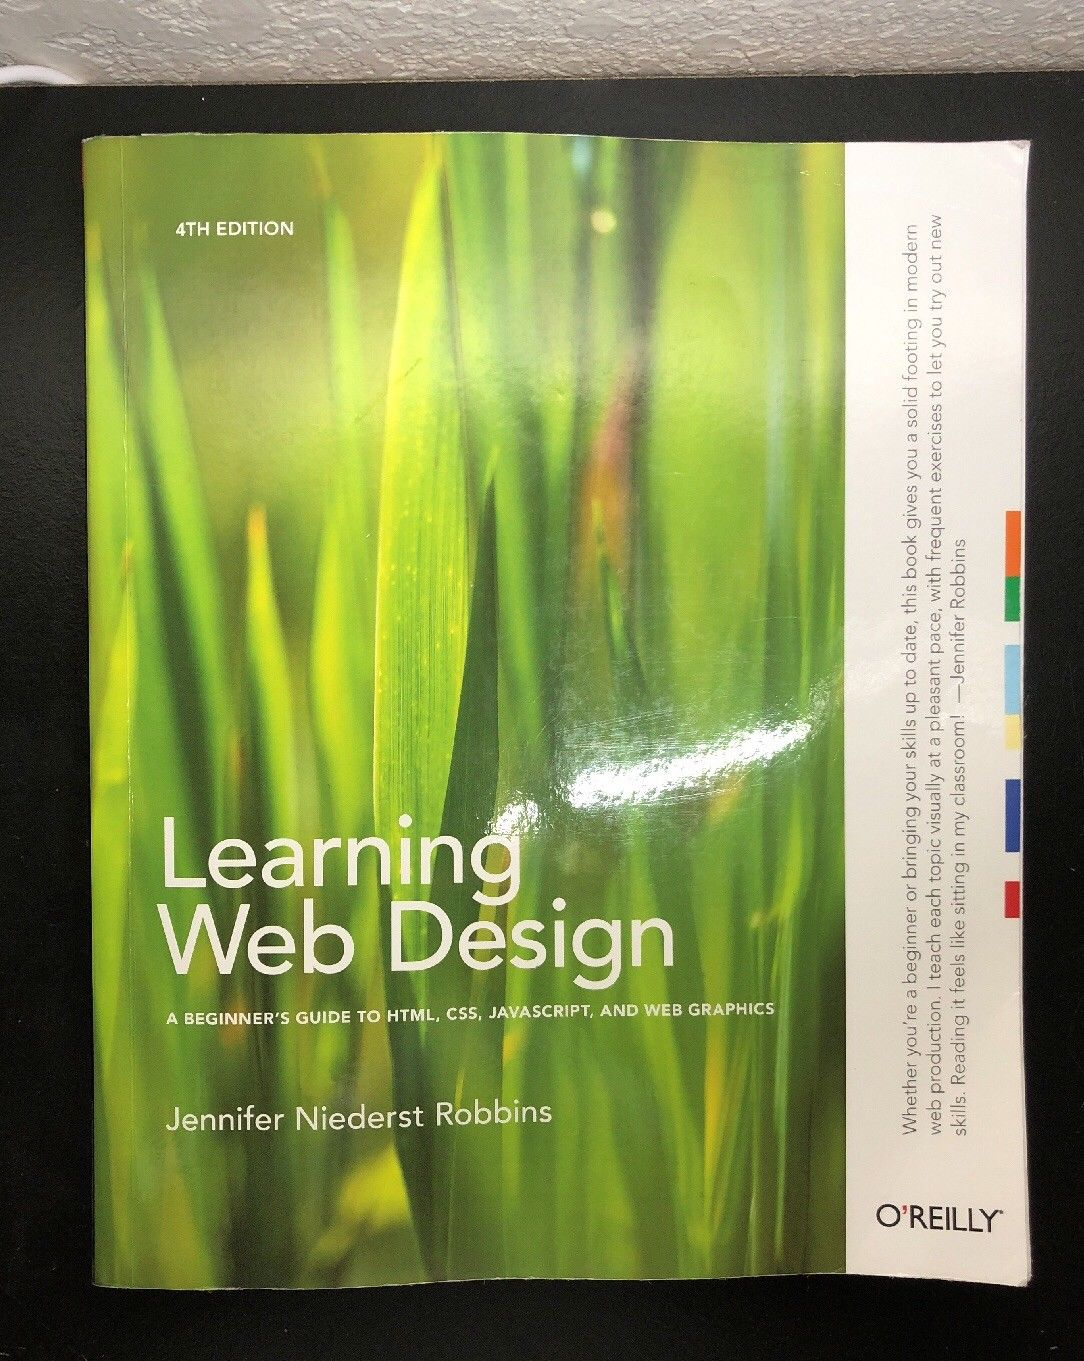 Learning Web Design: A Beginner's Guide to HTML, CSS, JavaScript, and Web Graphi |